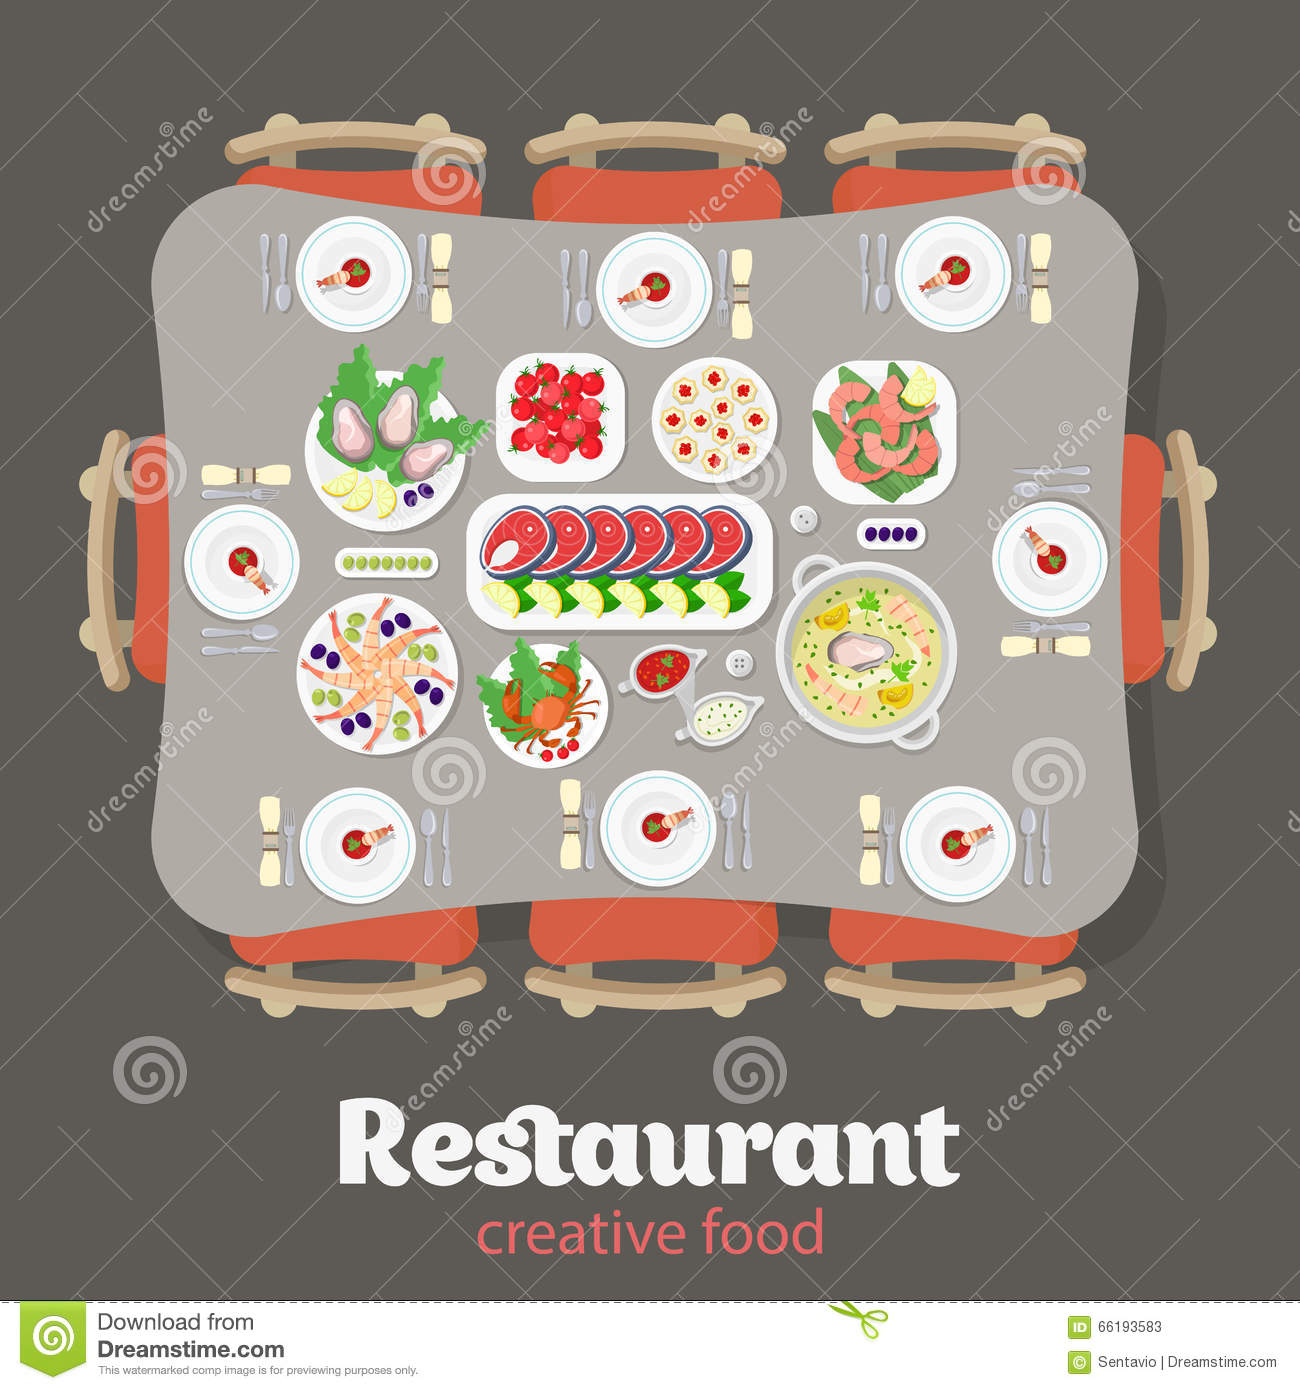 For restaurant pictures graphics illustrations clipart photos - Cake